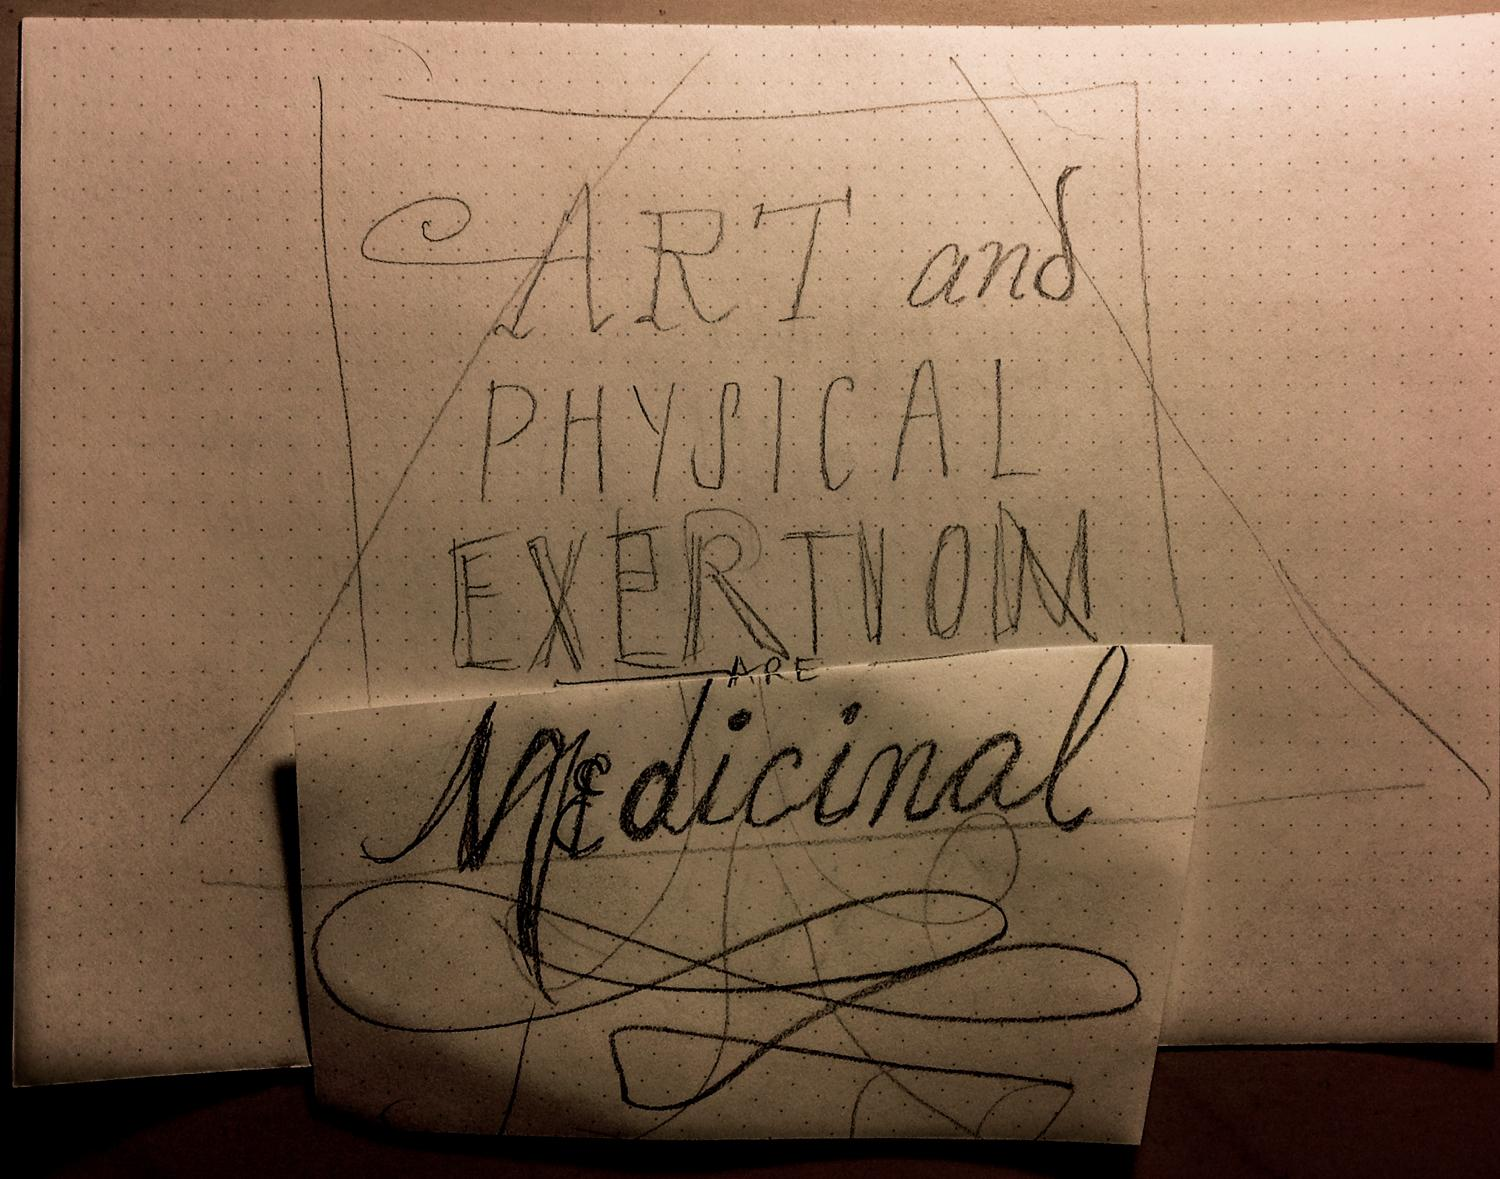 Art and Exertion  - image 1 - student project